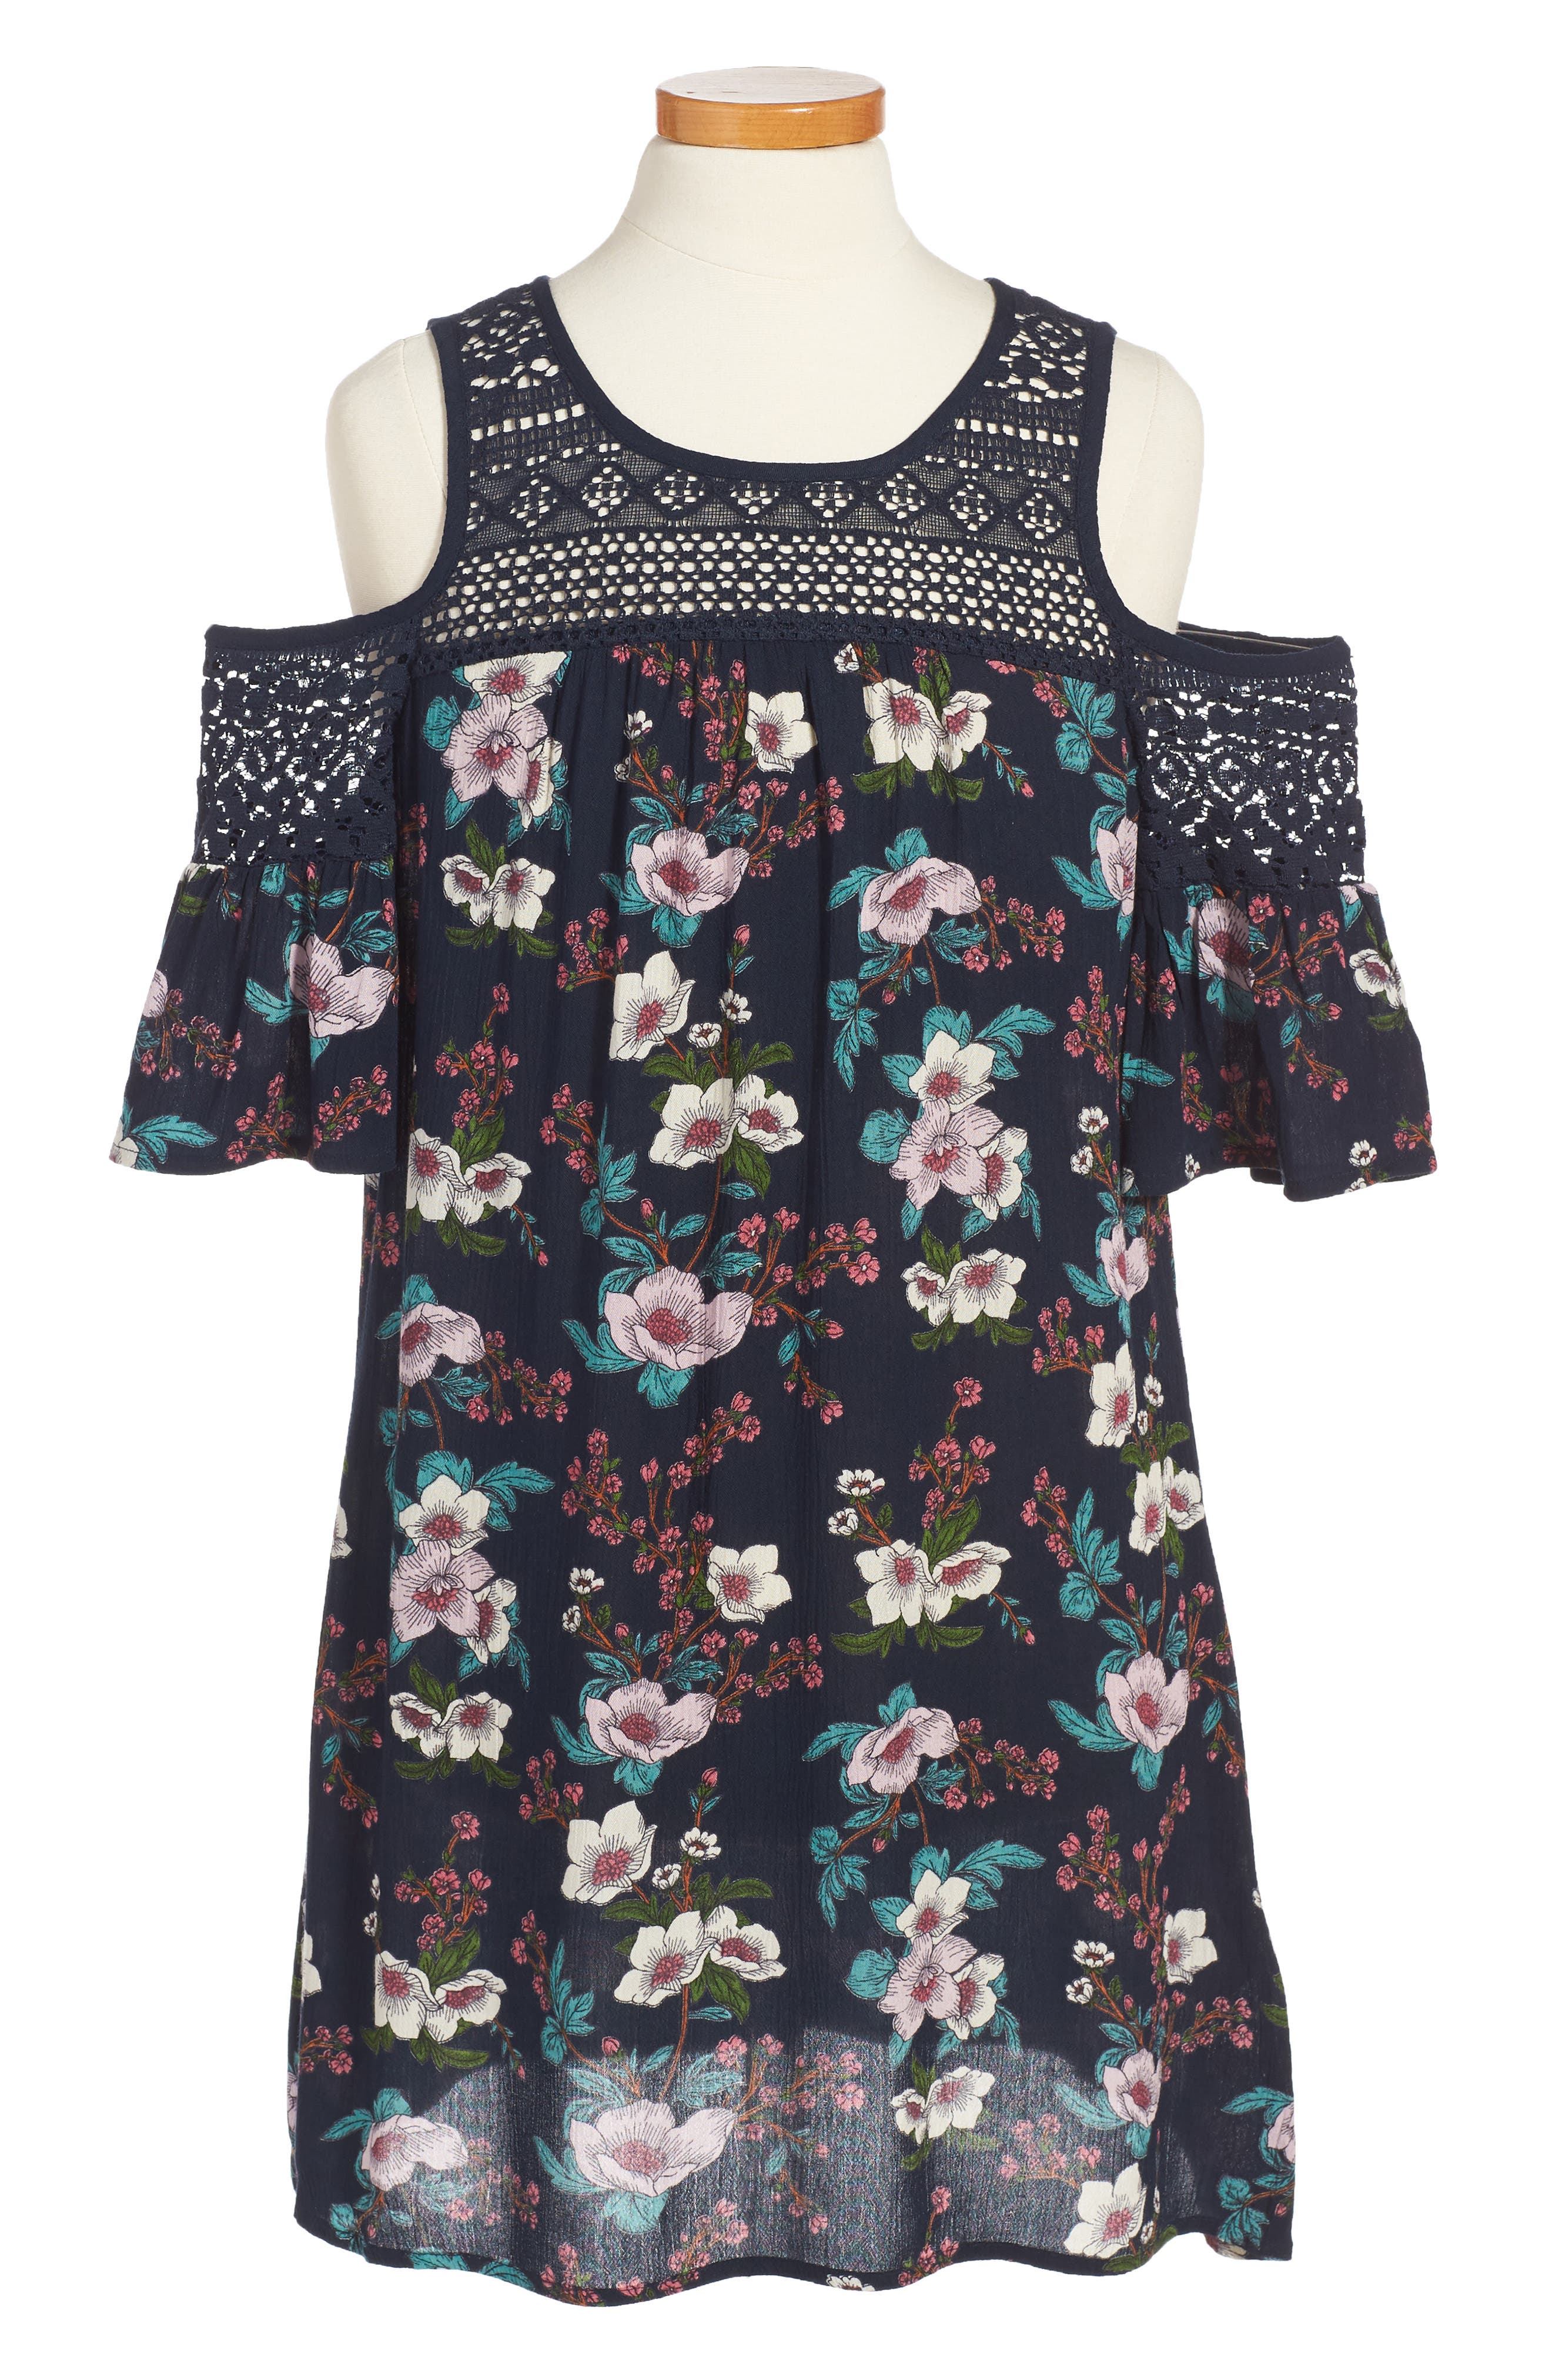 Zoe & Rose Crochet Inset Floral Dress,                             Main thumbnail 1, color,                             Navy/ Rose